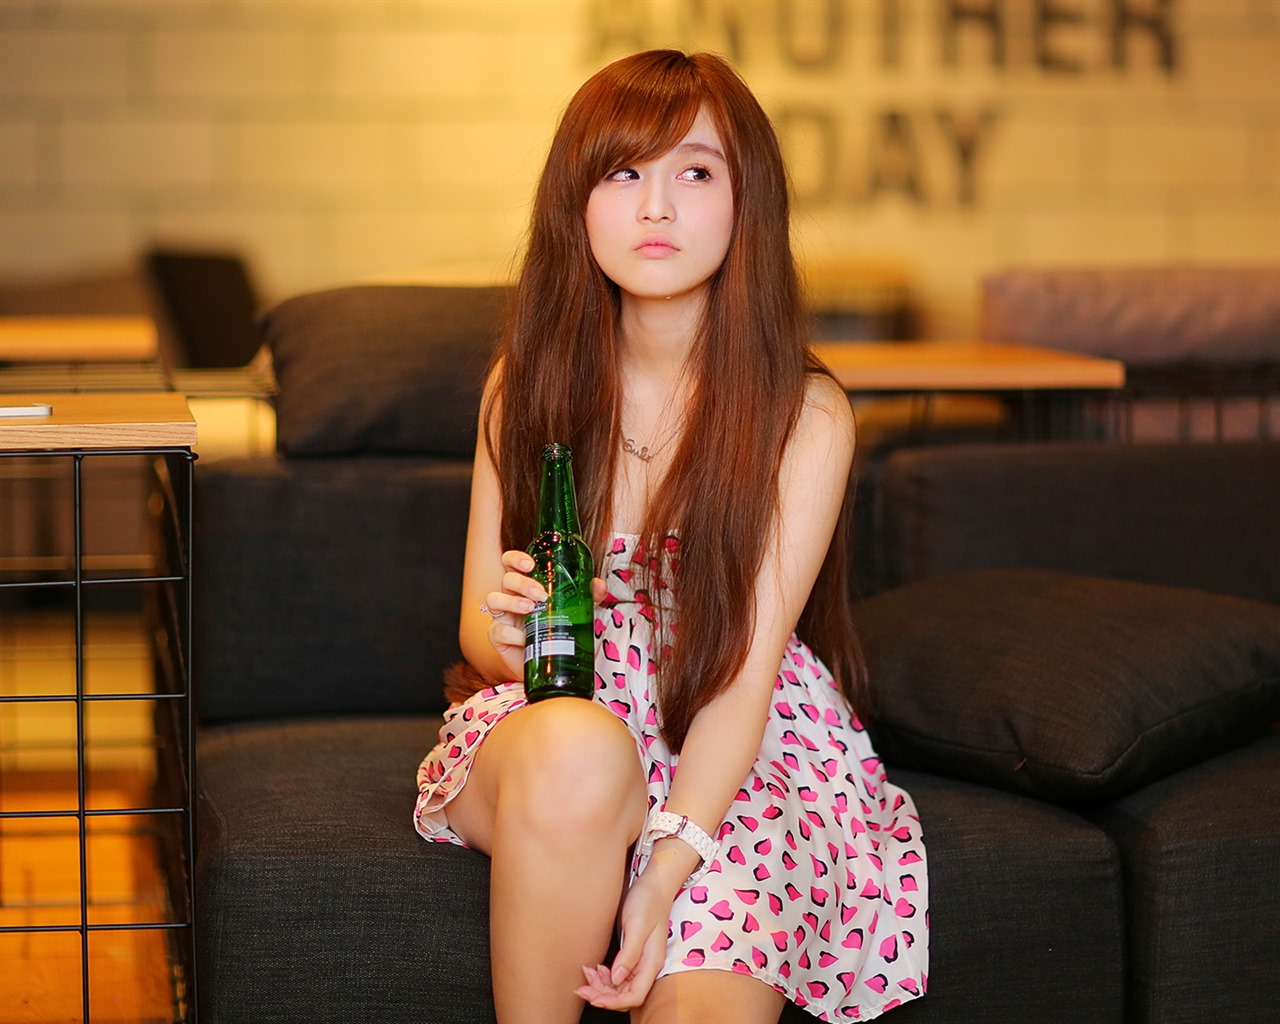 arthur asian girl personals Hot sexy asian girls 15k likes welcome to hot sexy asian girls if you enjoy the page like and comment on your favourite pictures keep it decent.